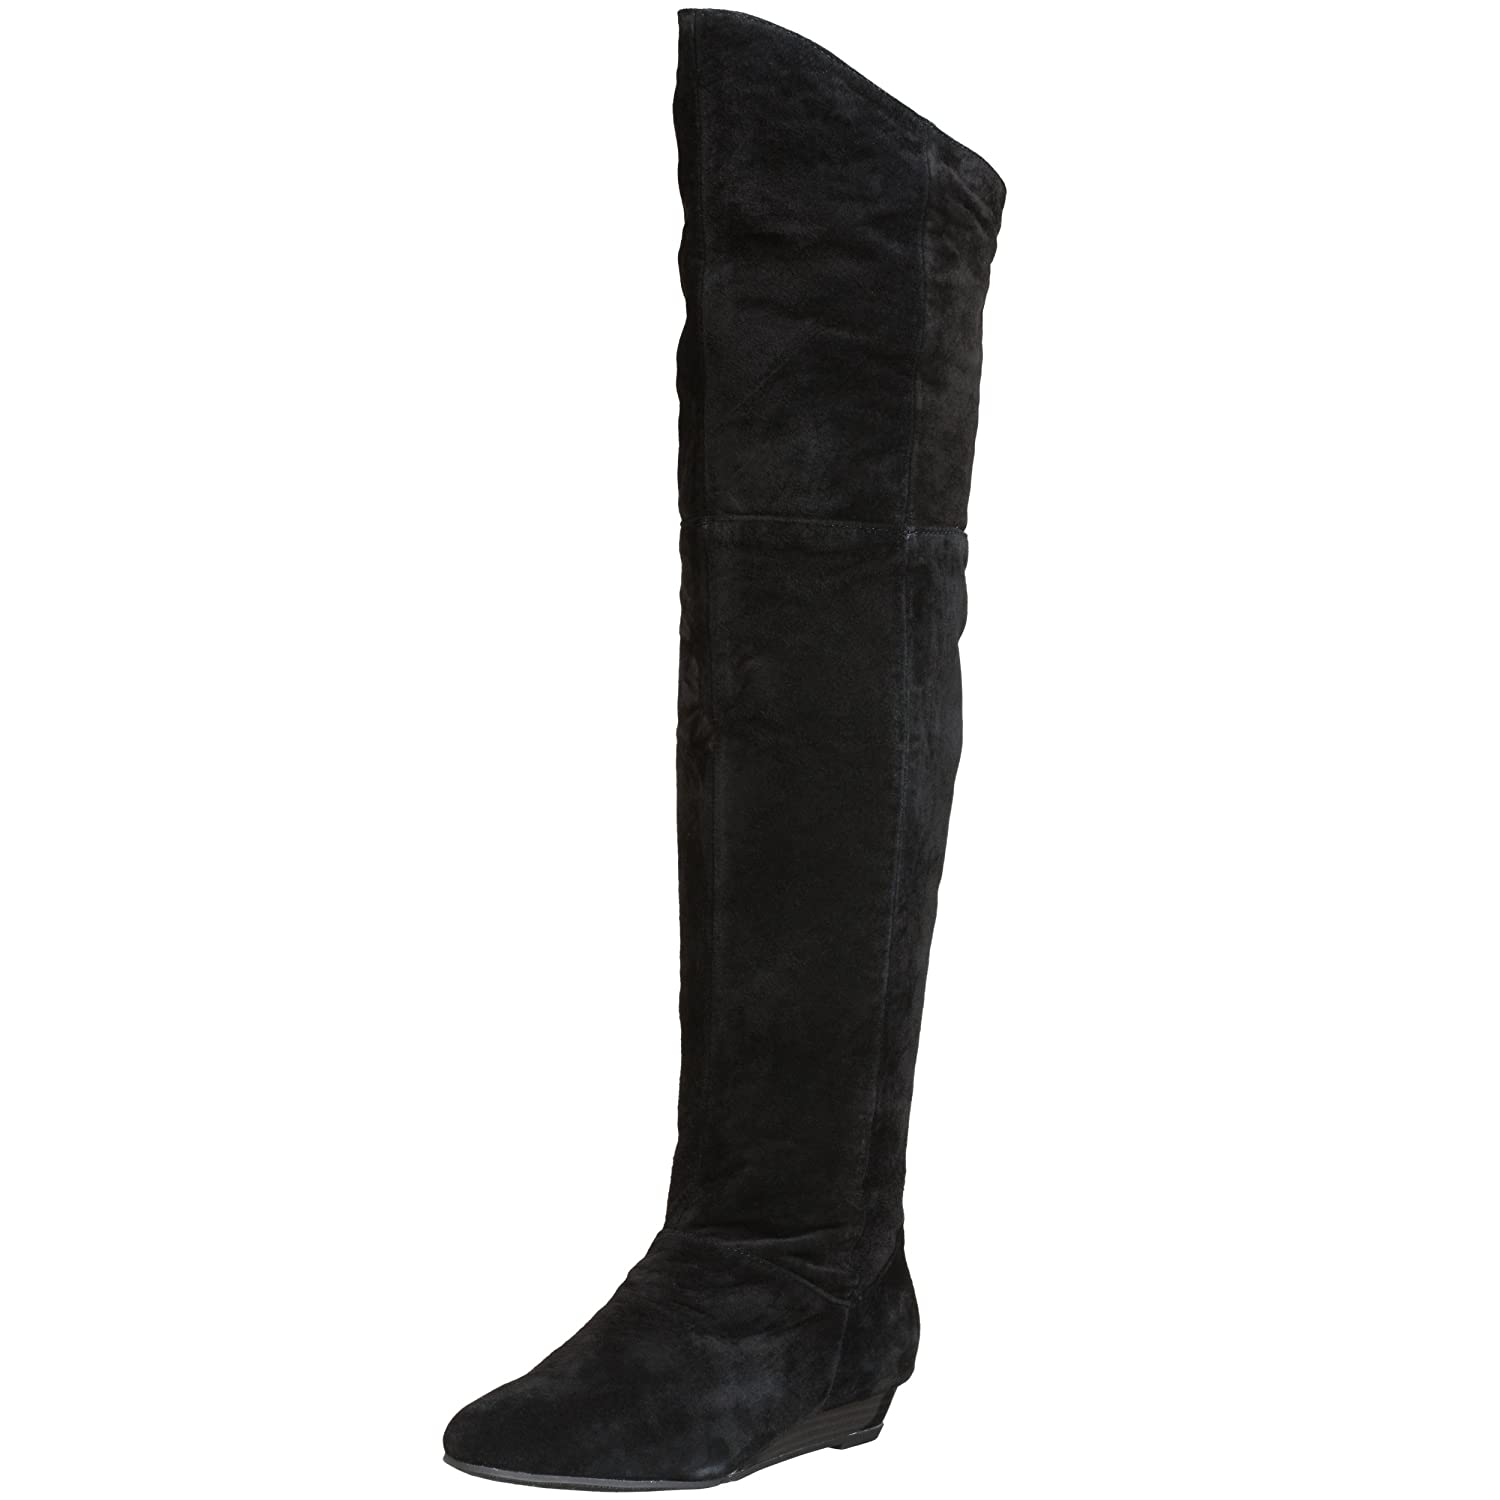 Chinese Laundry Women's Turbo Suede Wedge Boot - Free Overnight Shipping & Return Shipping: Endless.com :  flat boots black suede boots suede boots endless